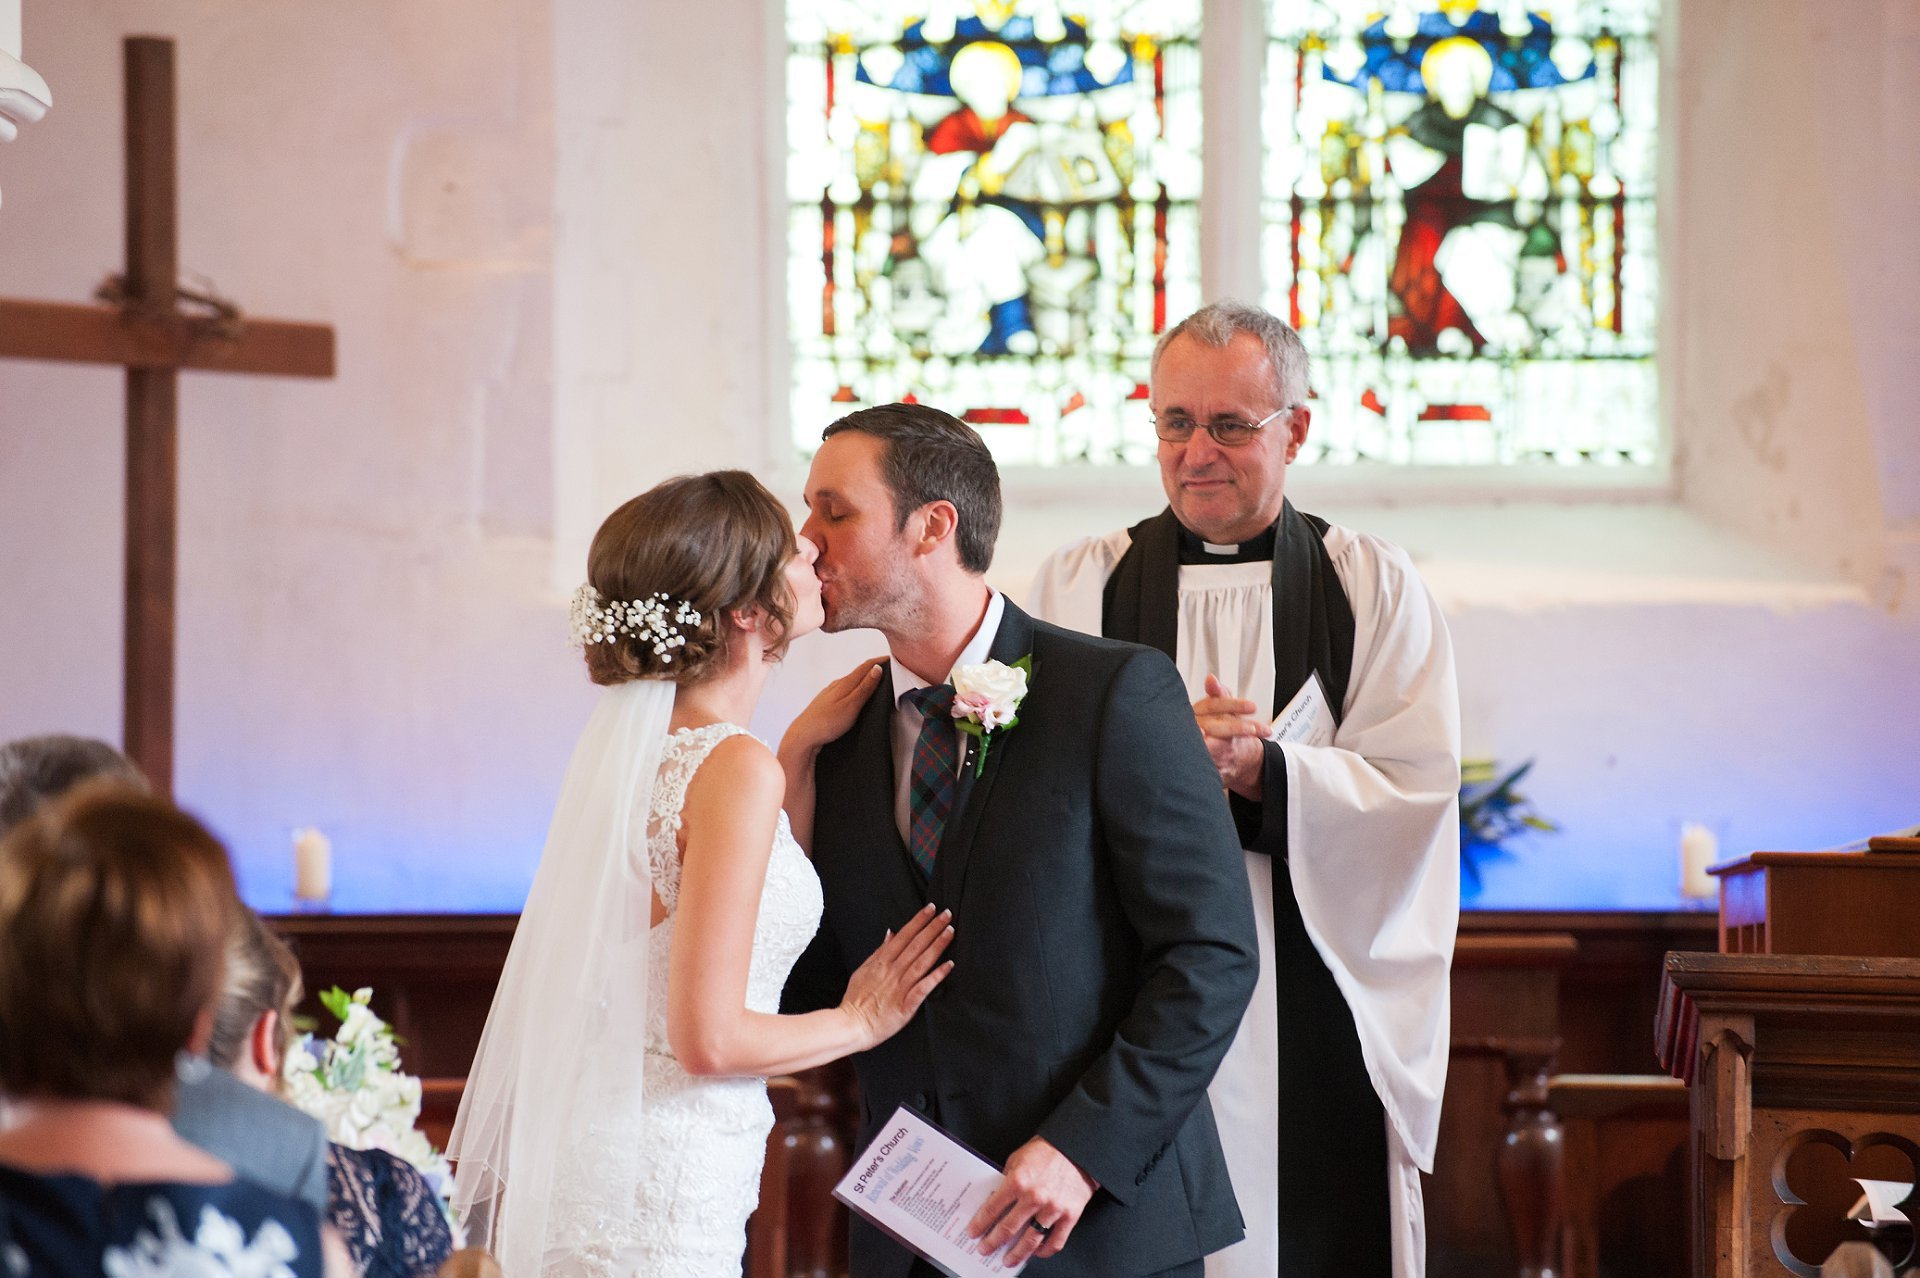 Ross Terranova at St Peter's Church Ditton smiles as the bride and groom kiss at the end of the marriage blessing of thie young British and Canadian couple, both teachers and heading to live in Canada. Their reception was at gorgeous Kent venue Leeds Castle in neaby Maidstone